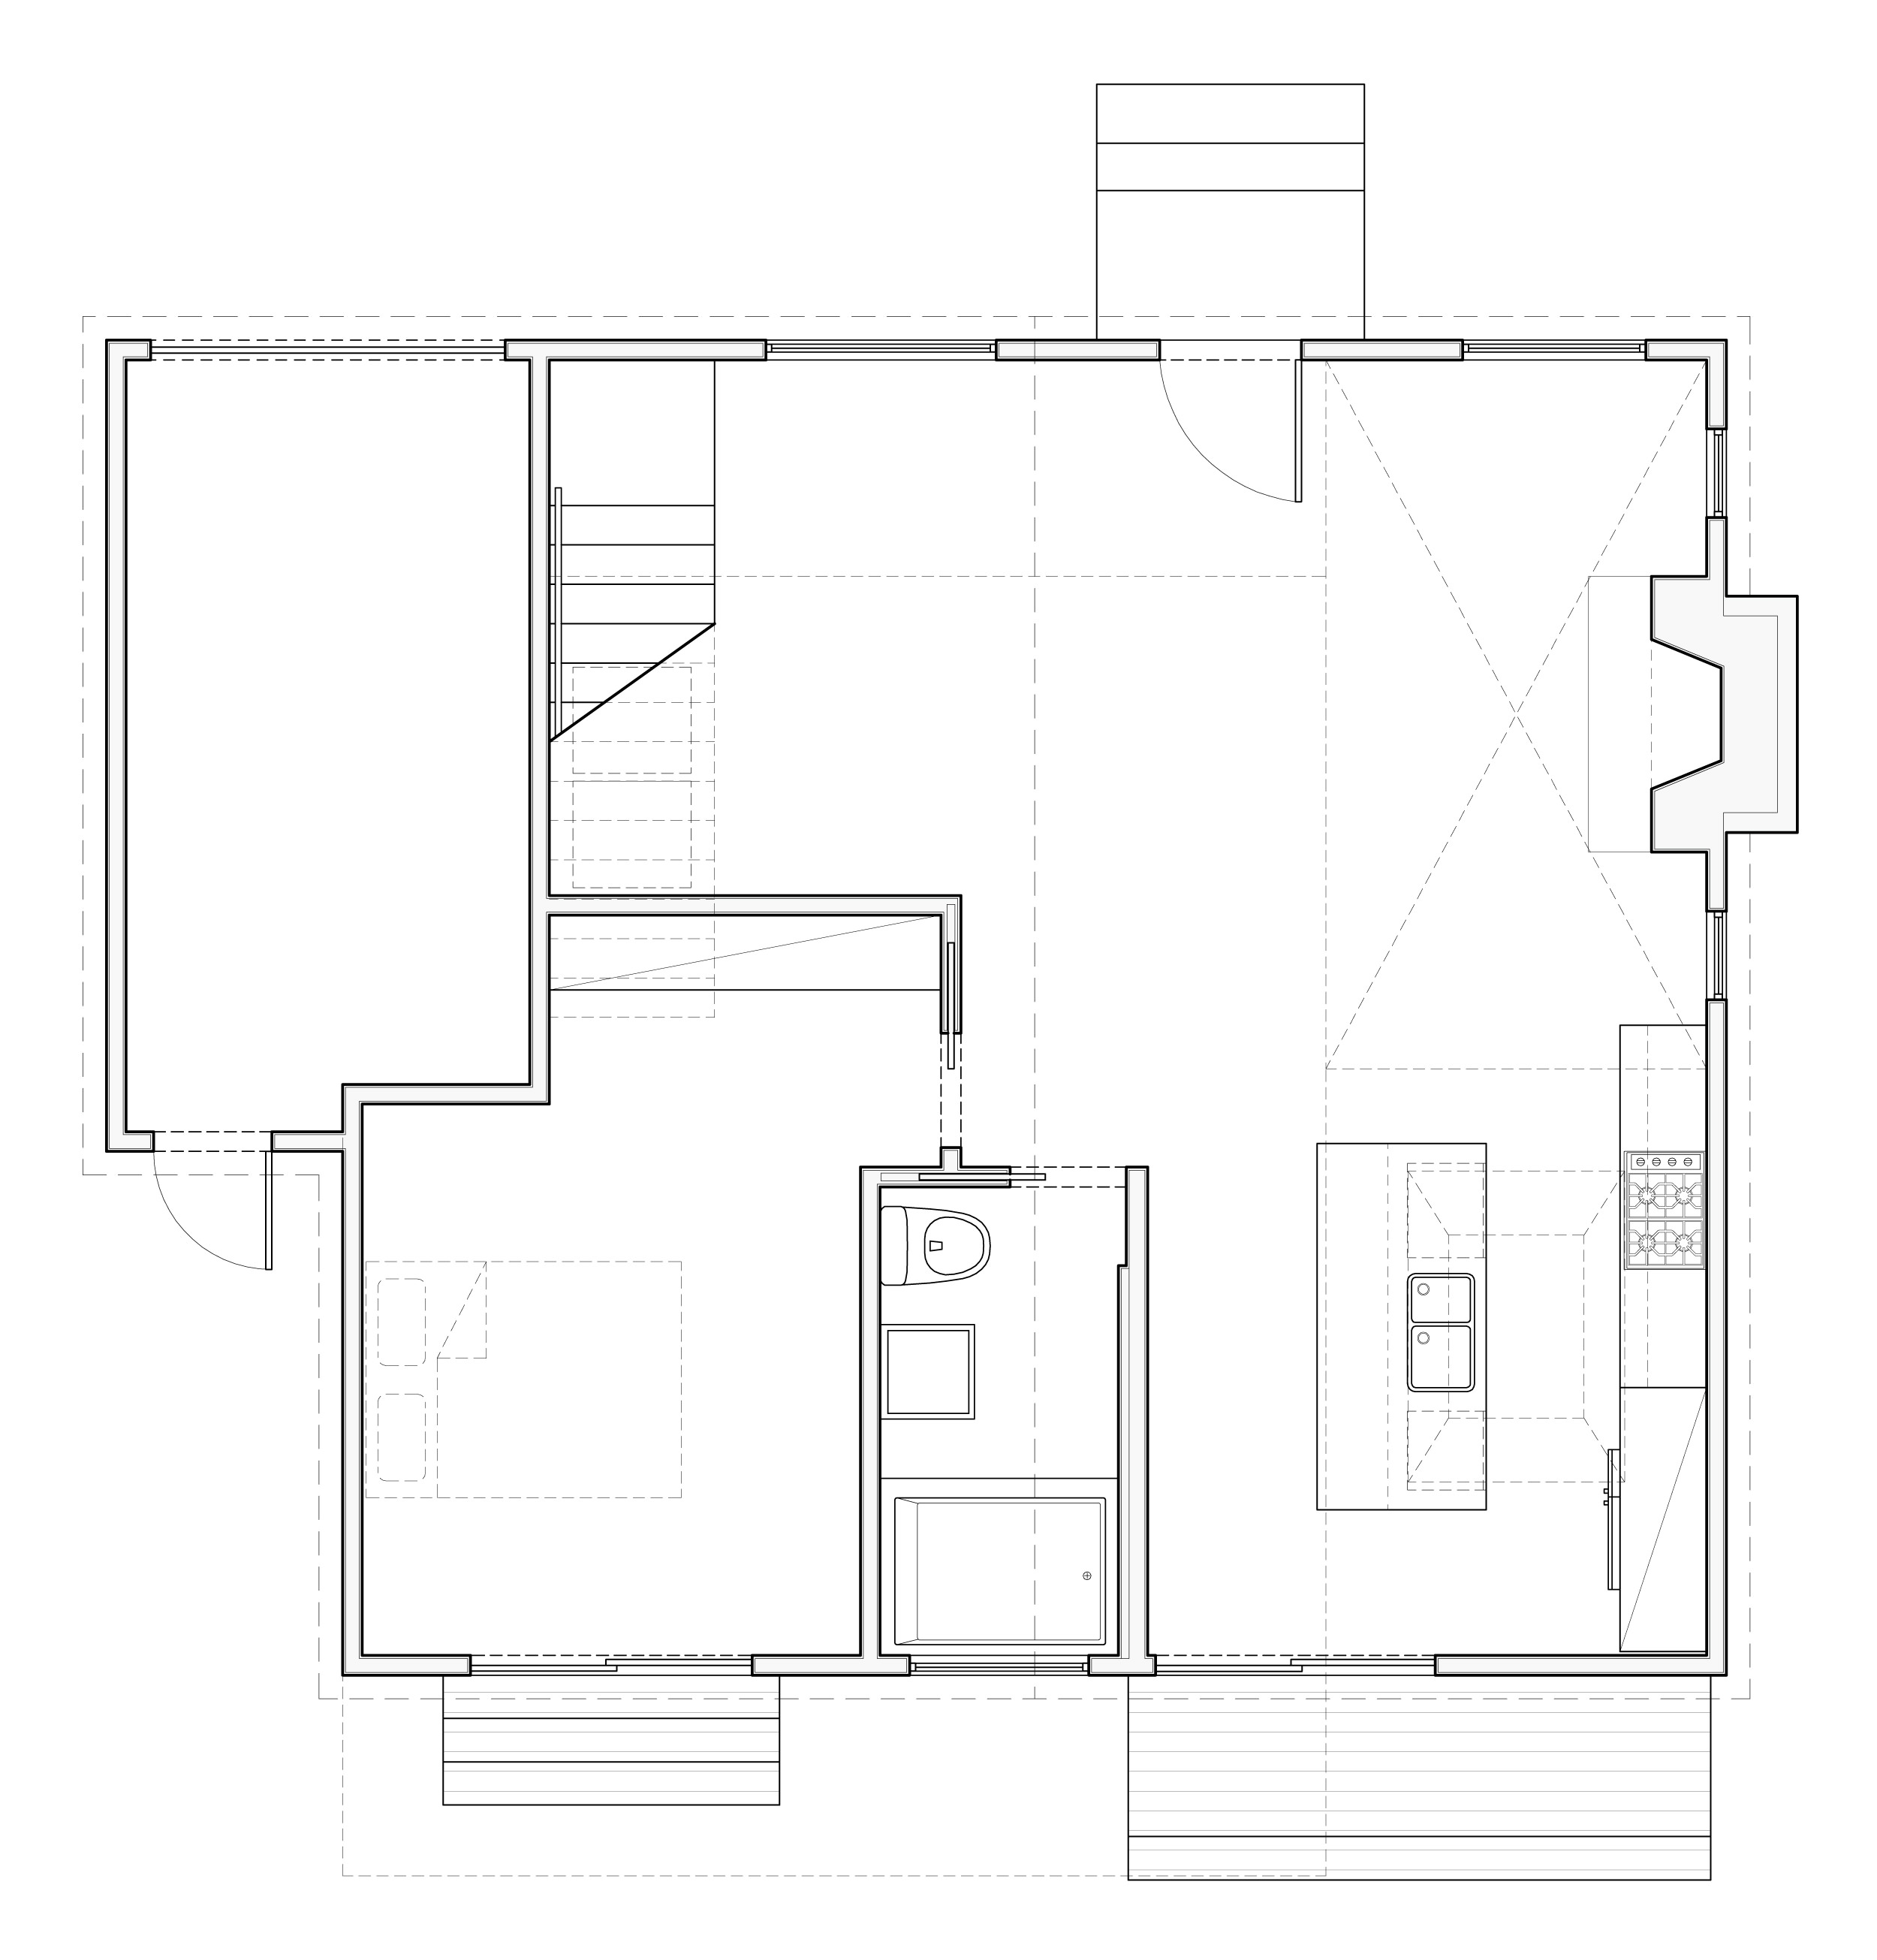 Plan of the existing house with new stair to the second story addition.